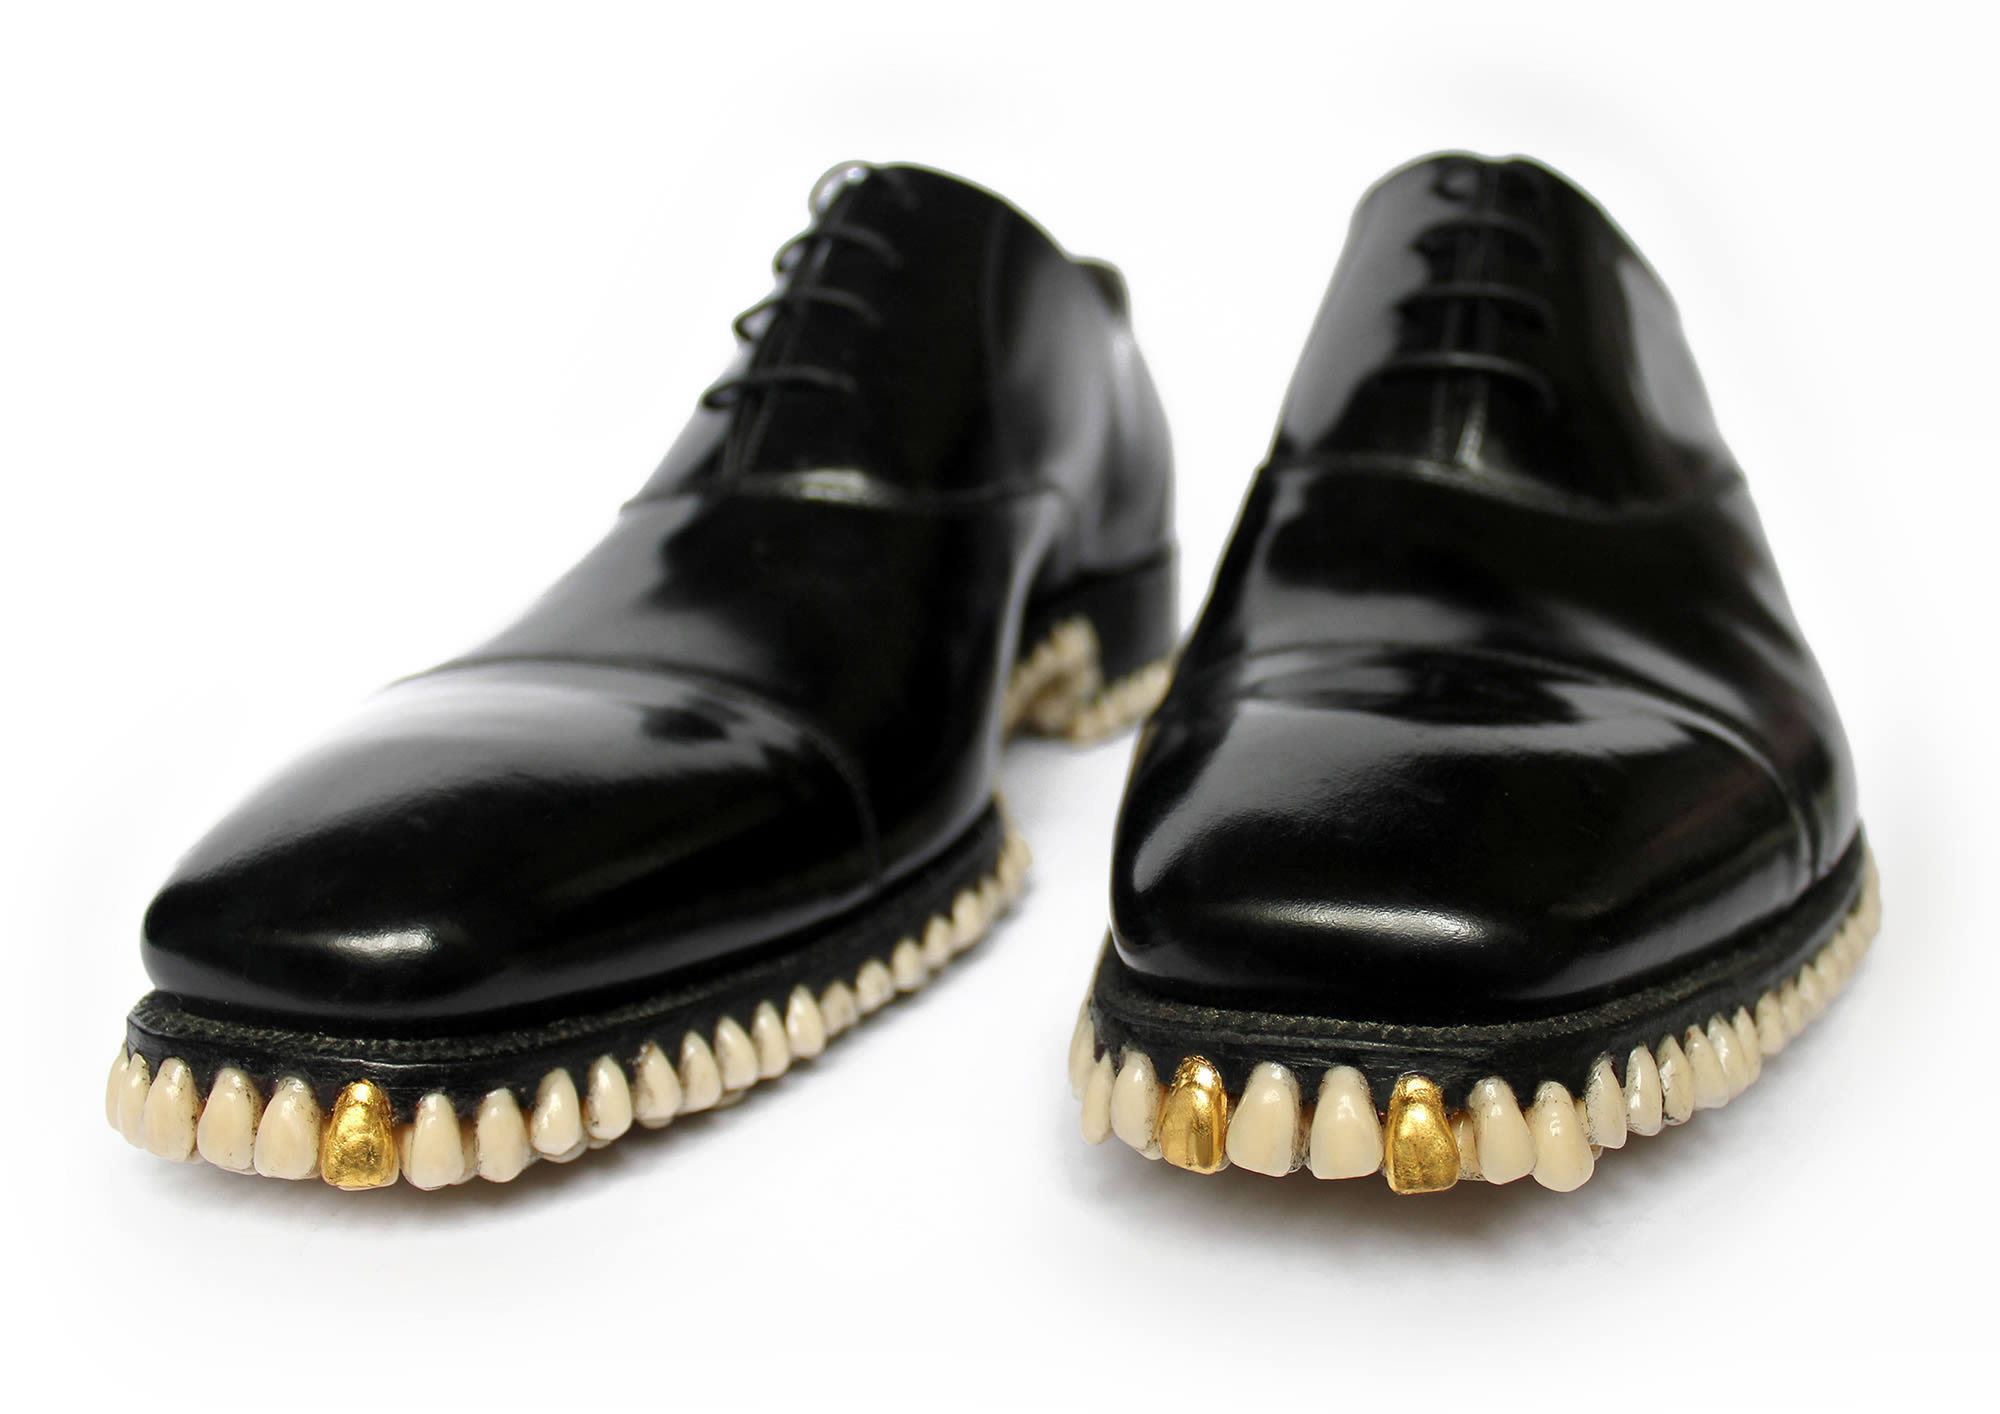 Fantich & Young's Creepy Shoes with Human Teeth Soles